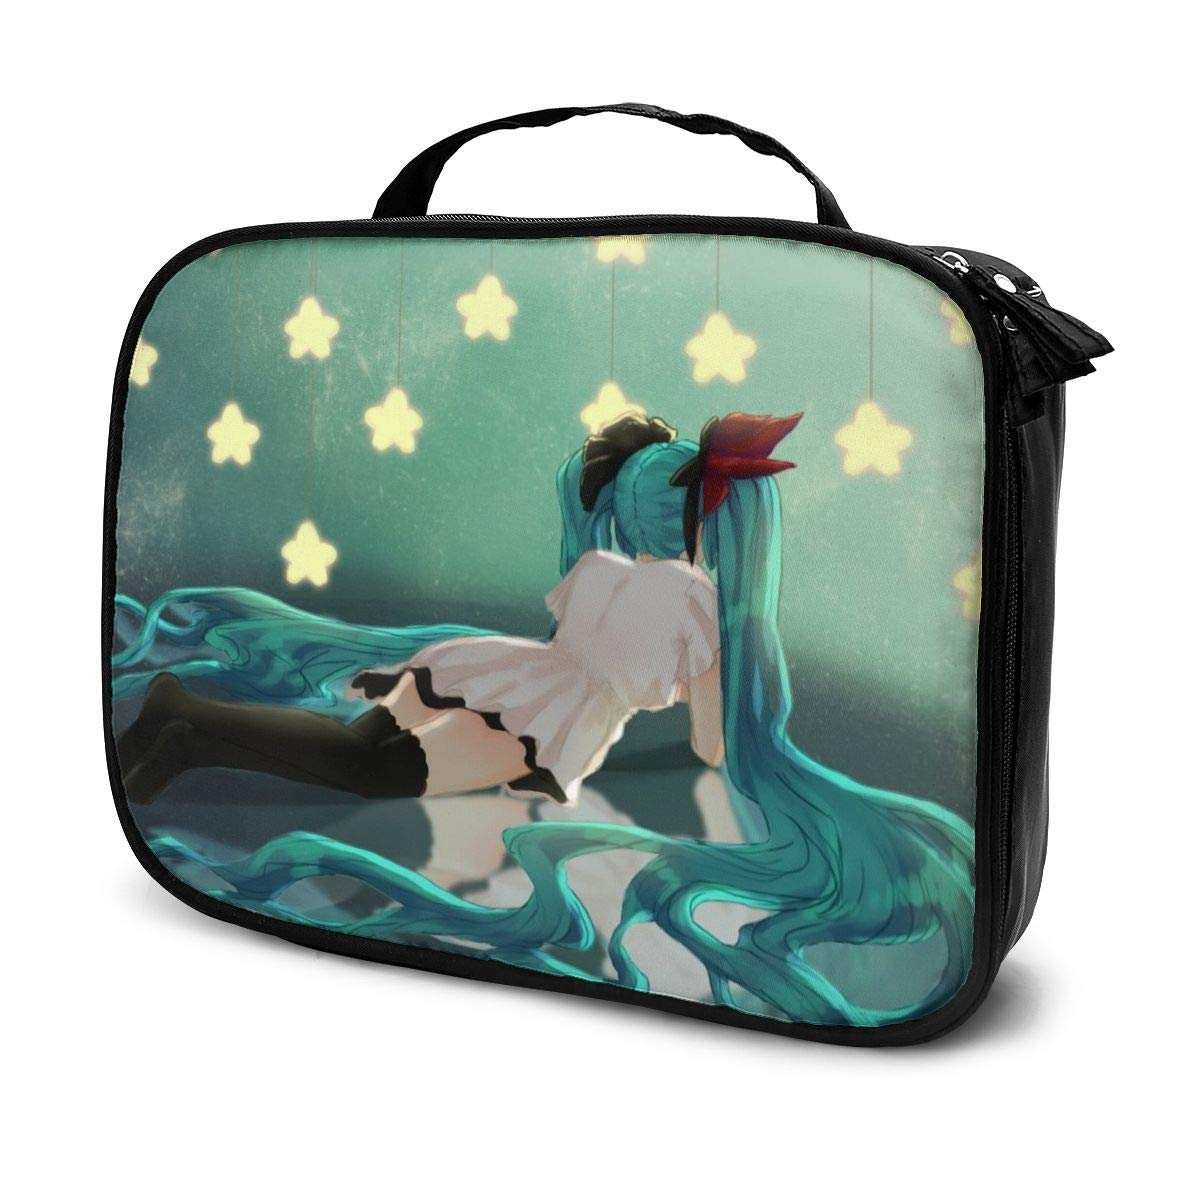 Hatsune Miku Makeup Bag Travel Toiletry Bags Large Cosmetic Cases For Women Girls 7.4 X 9.8 Inches